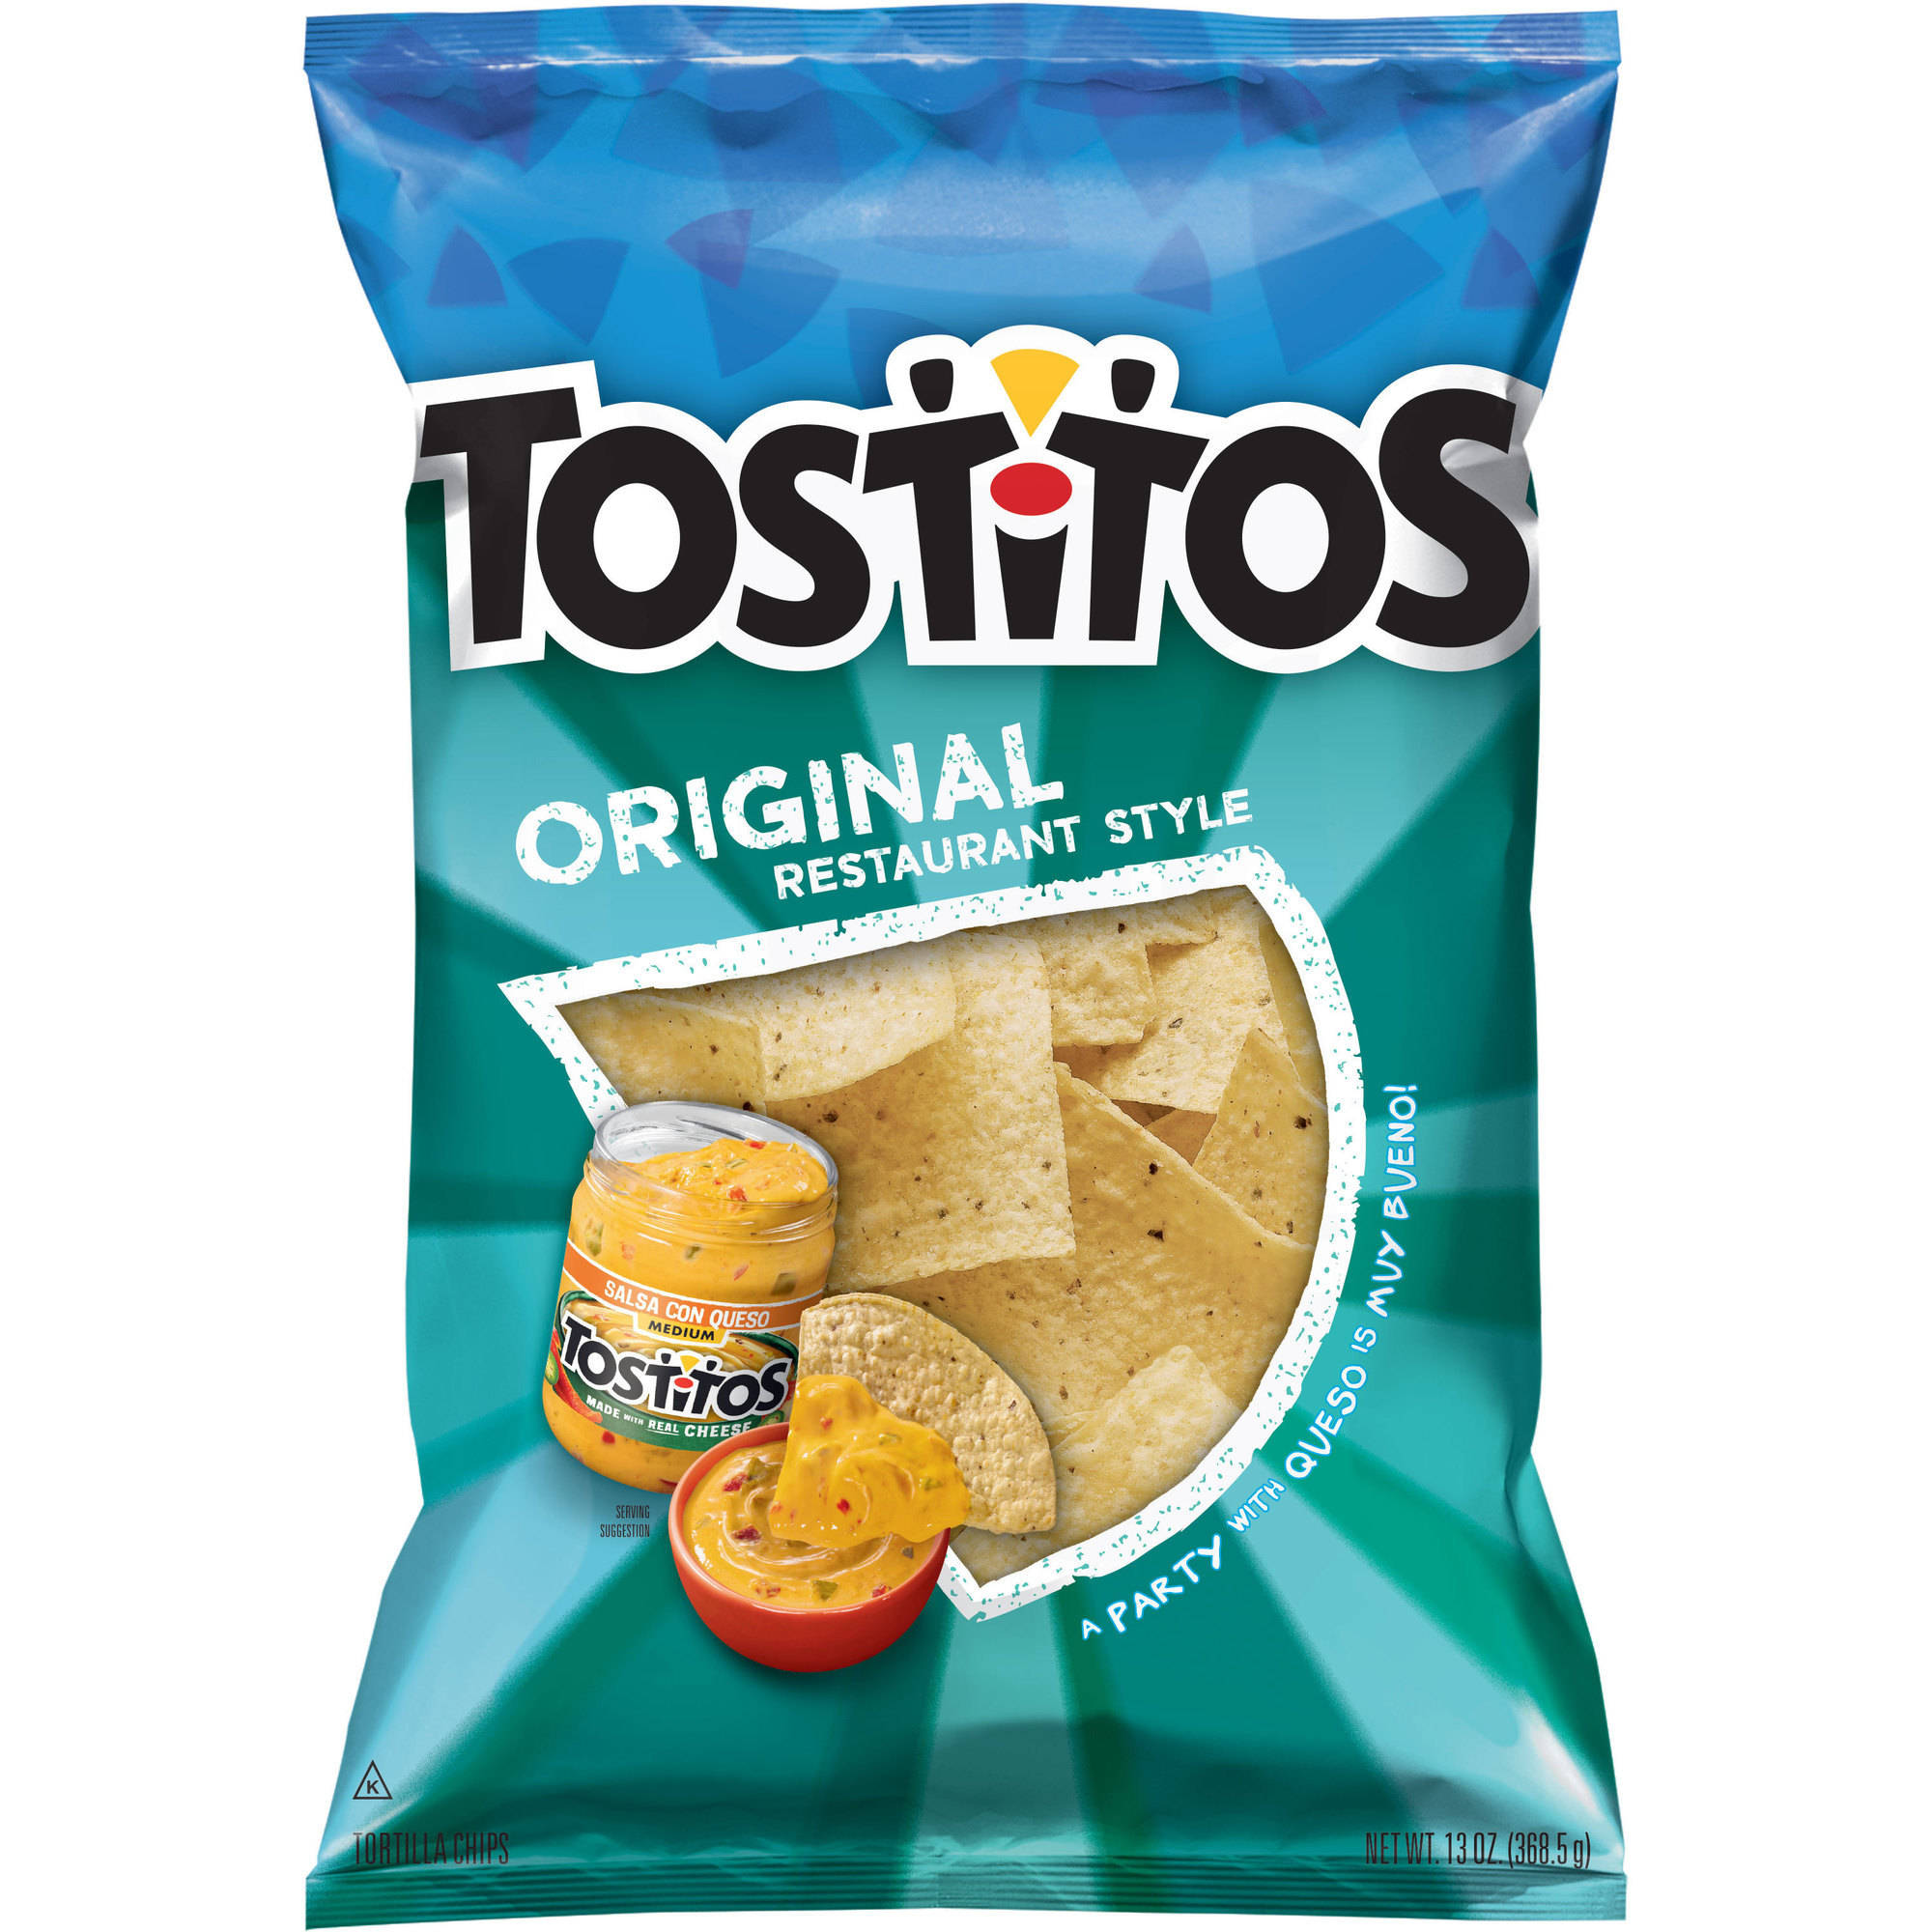 Tostitos Restaurant Style White Corn Tortilla Chips, 13 oz